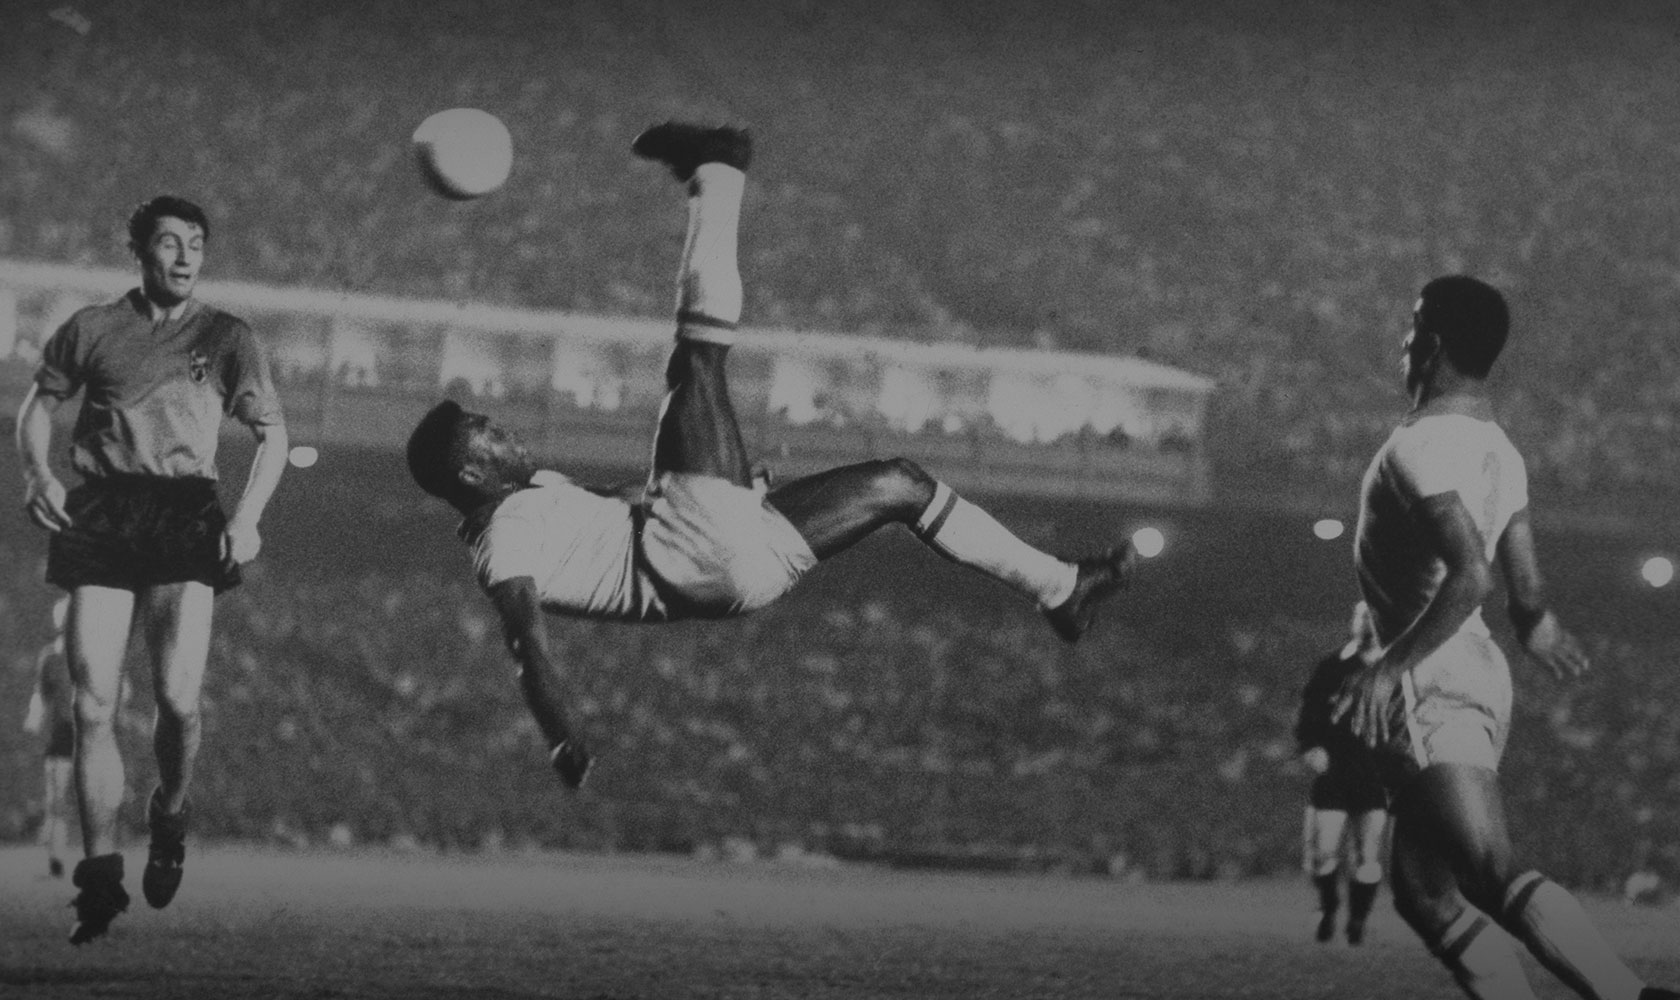 Pele bicycle kick, 1965.